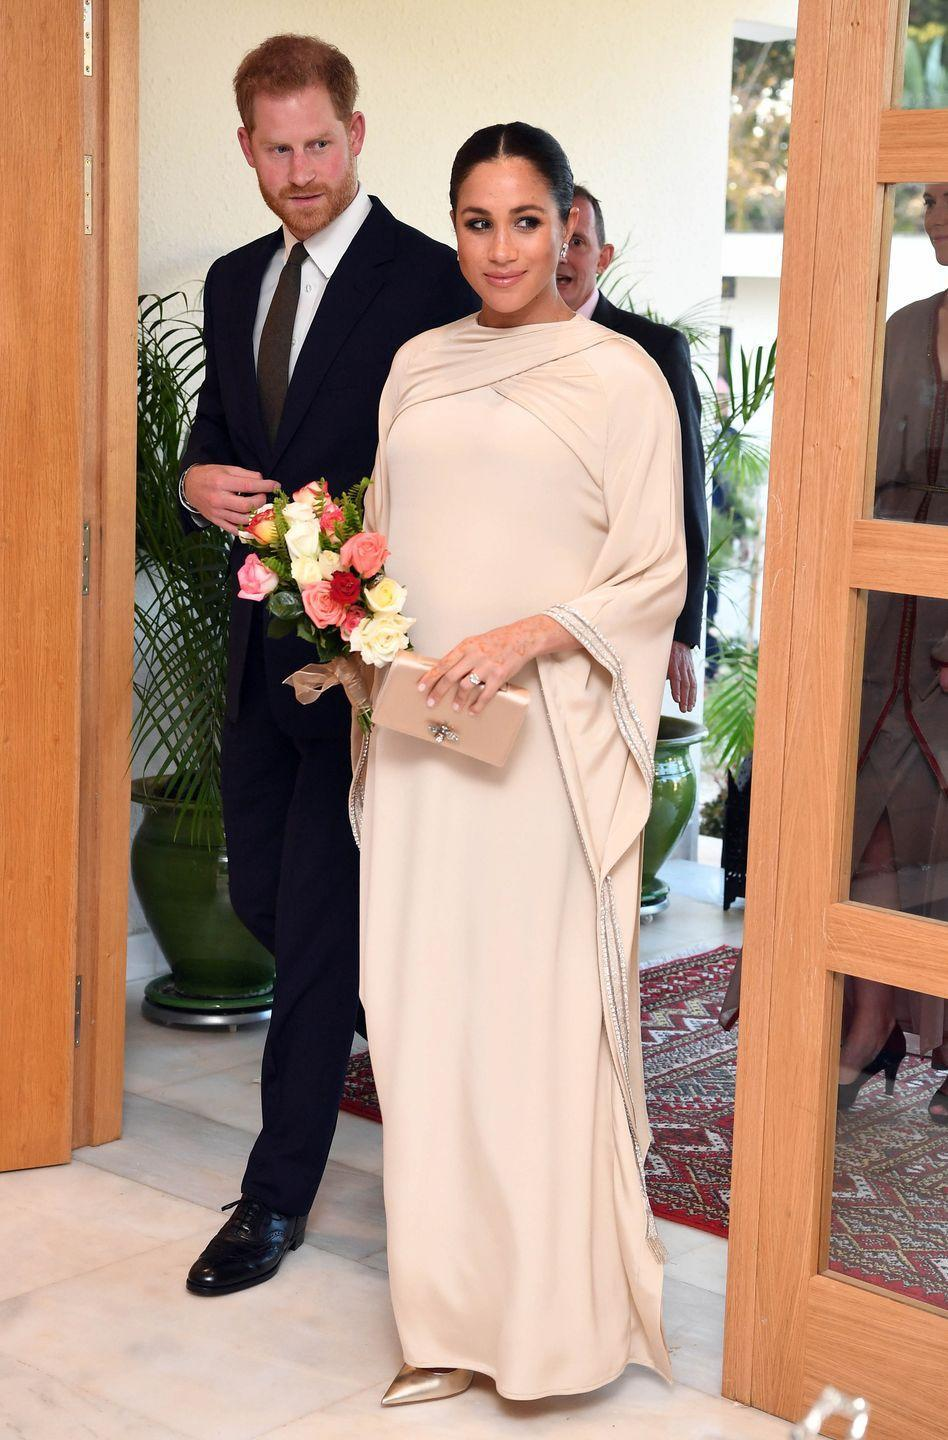 <p>Meghan Markle wore an elegant cream draped gown on the second day of her royal tour in Morocco. The Duchess wore the Dior gown for a reception held at the British Residence in Rabat, Morocco. </p>